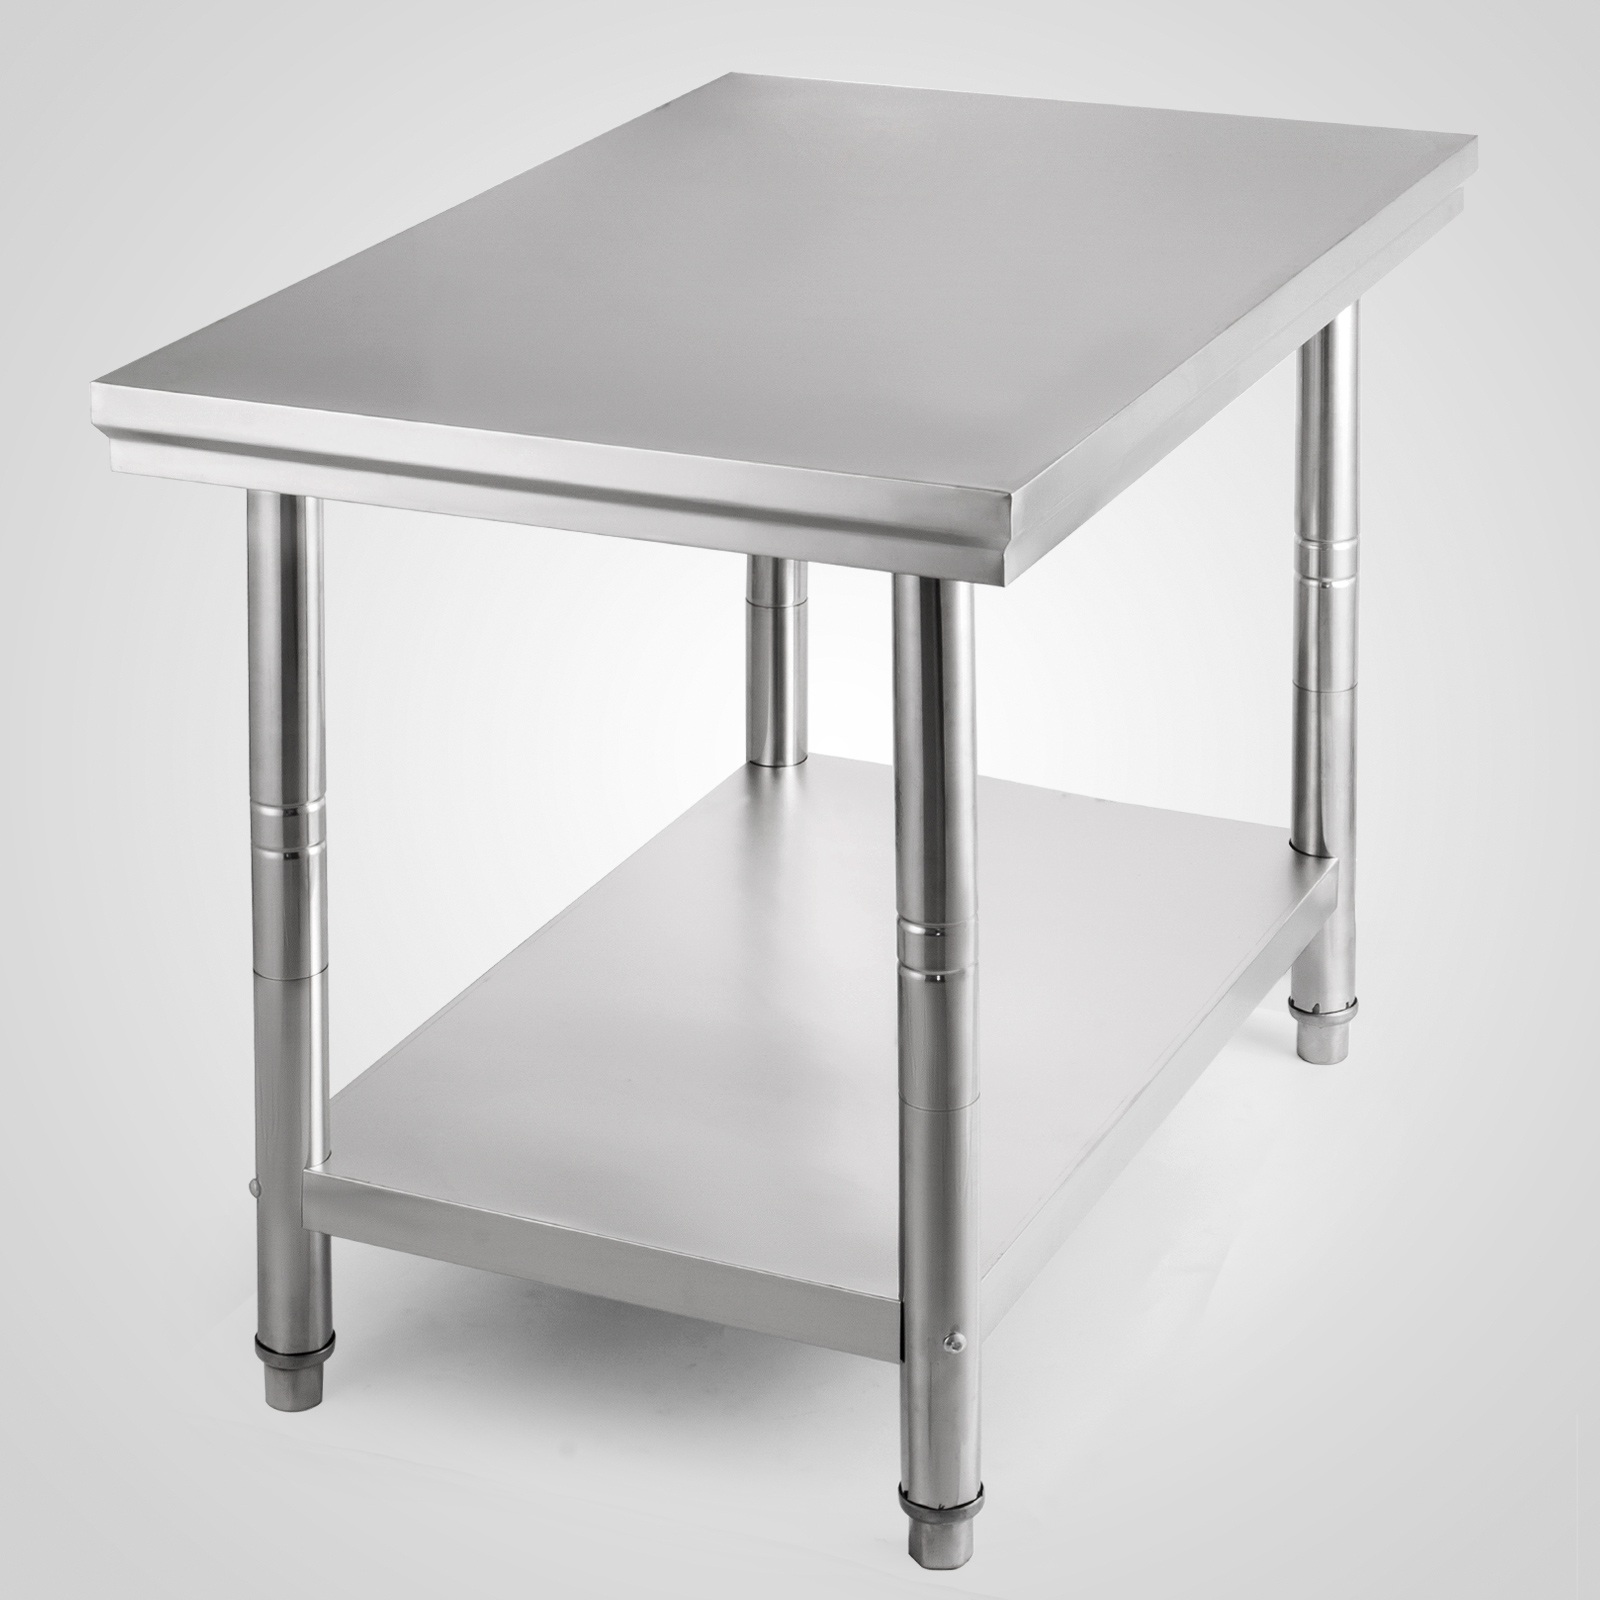 all size commercial stainless steel kitchen work bench food prep table top ebay. Black Bedroom Furniture Sets. Home Design Ideas